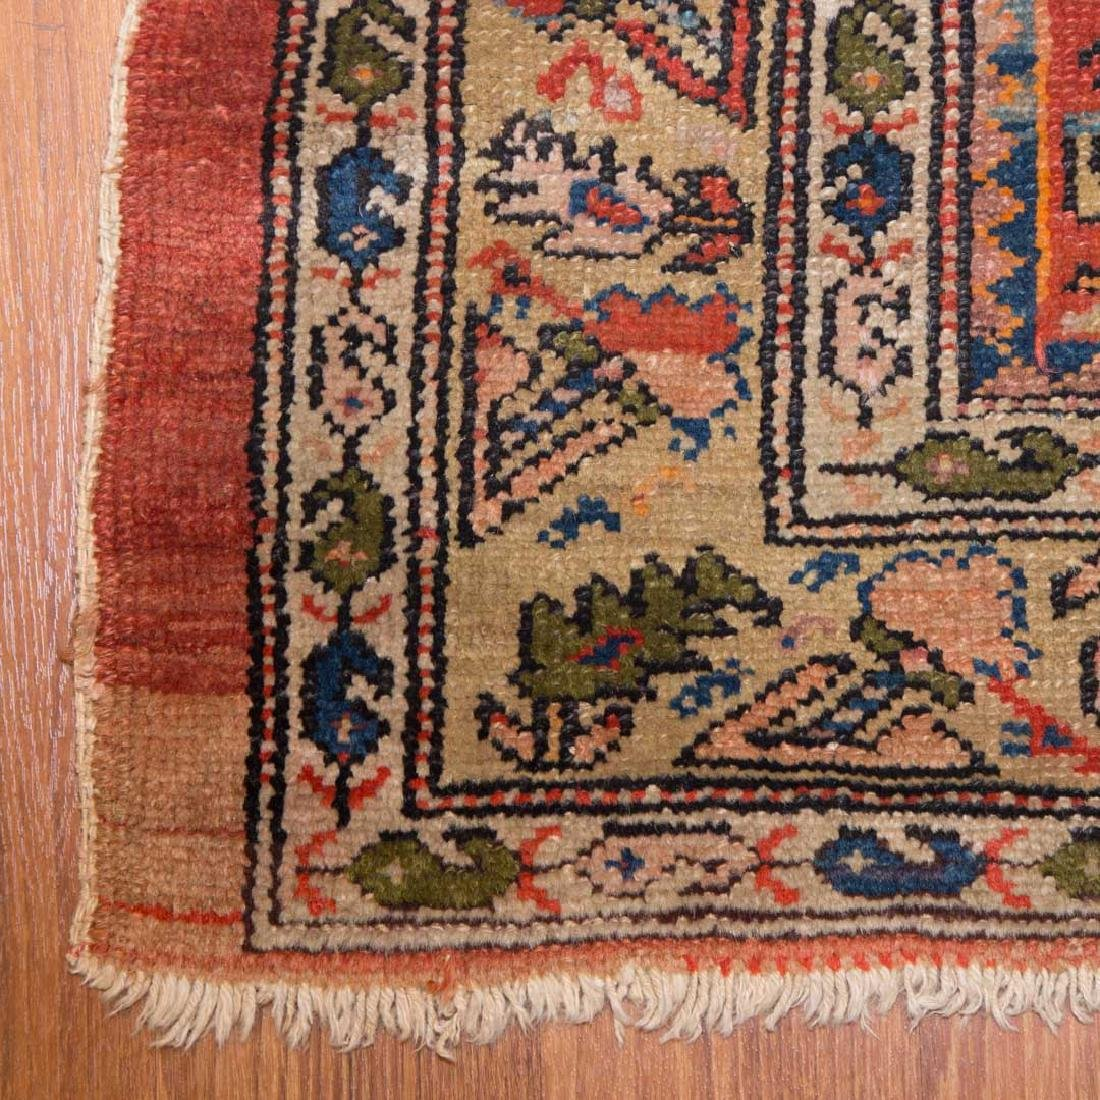 Antique Malayer rug, approx. 4 x 6.10 - 2